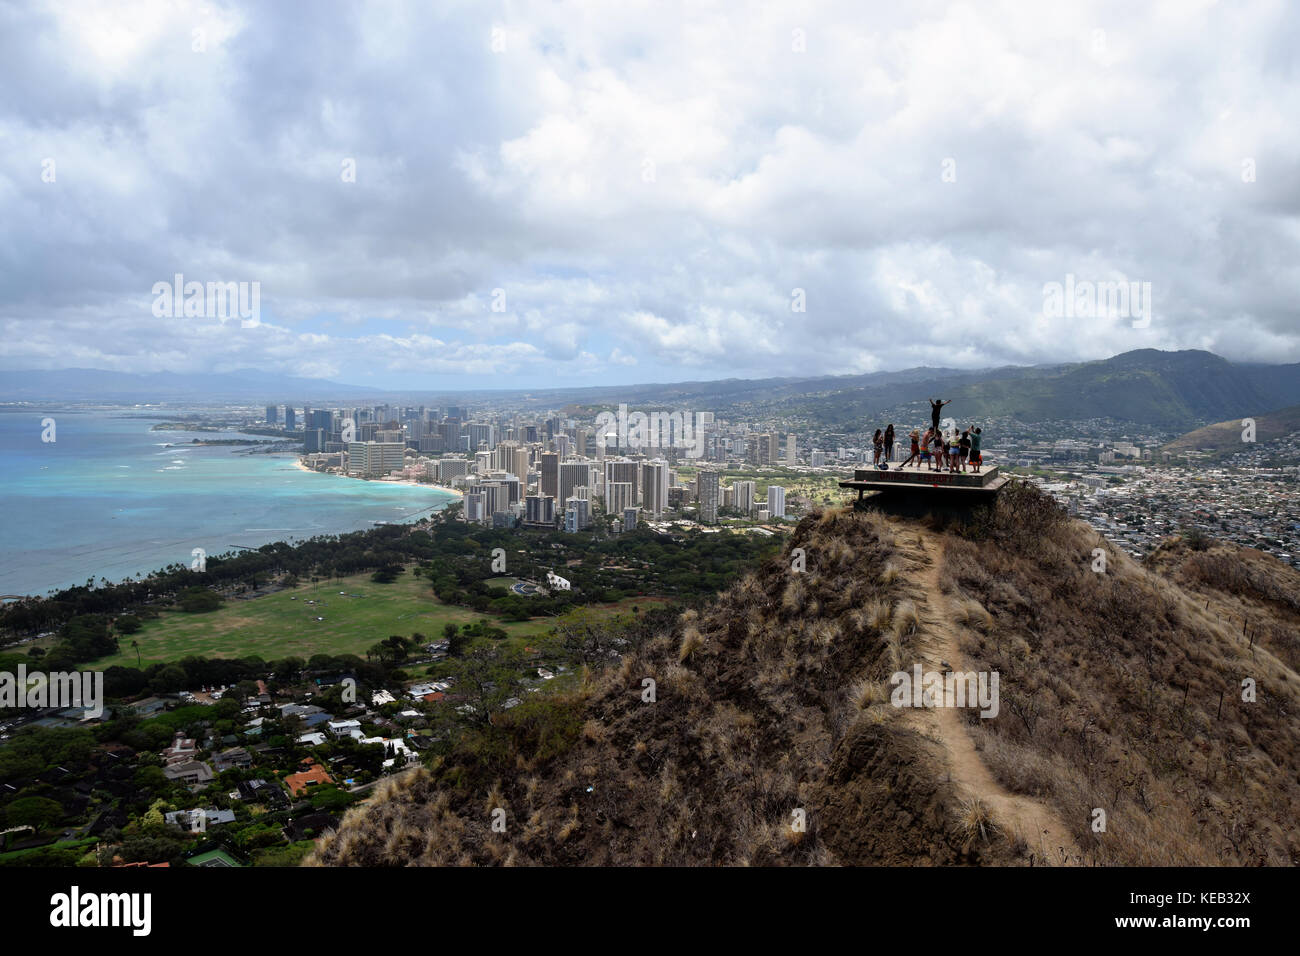 Hiking up to the summit of Diamond Head on the island of Oahu, Hawaii, offers spectacular views of the ocean below. - Stock Image